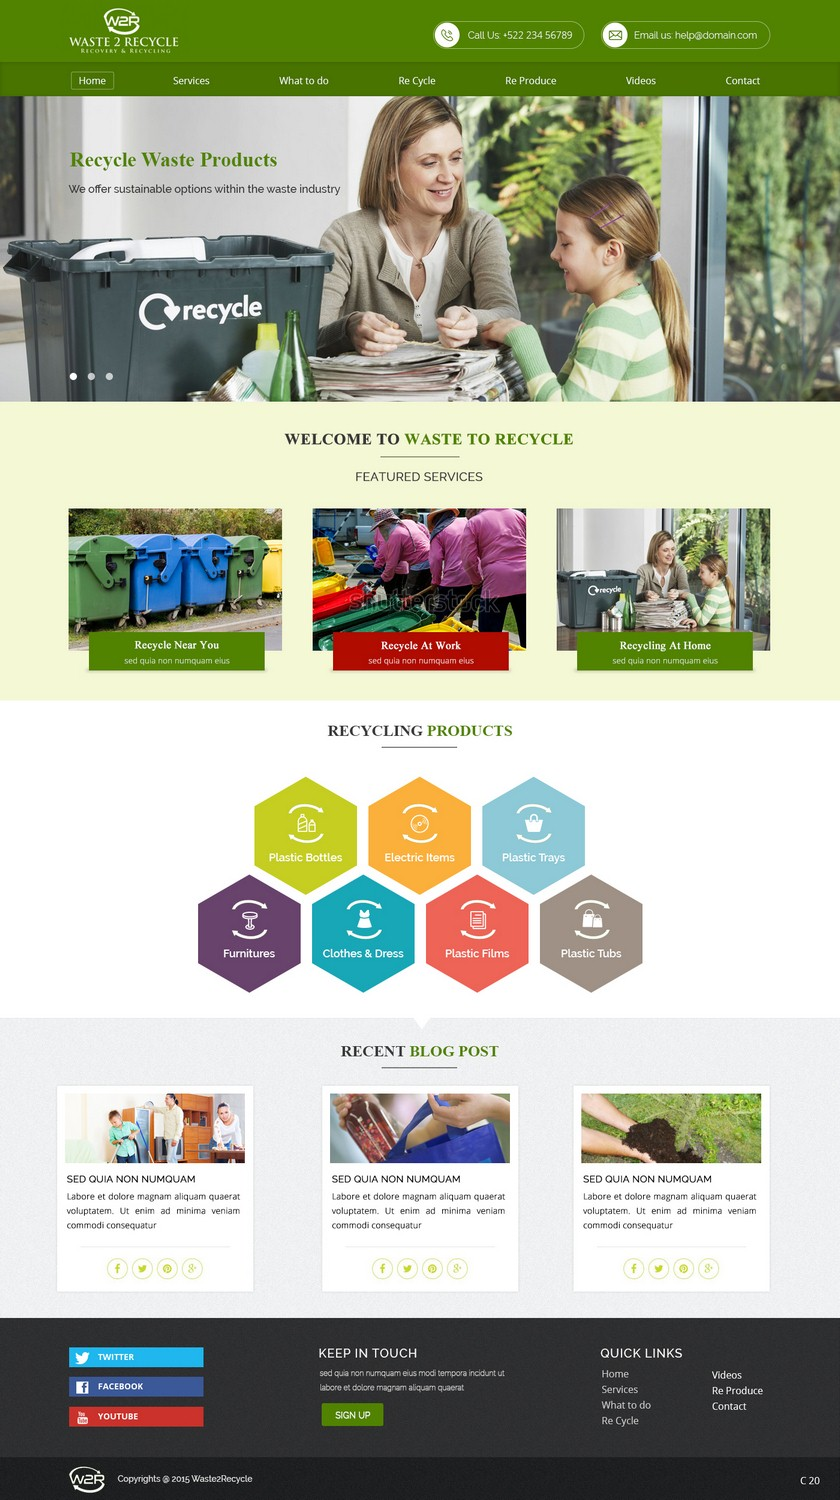 Serious, Modern, Waste Management Web Design for Waste 2 Recycle by